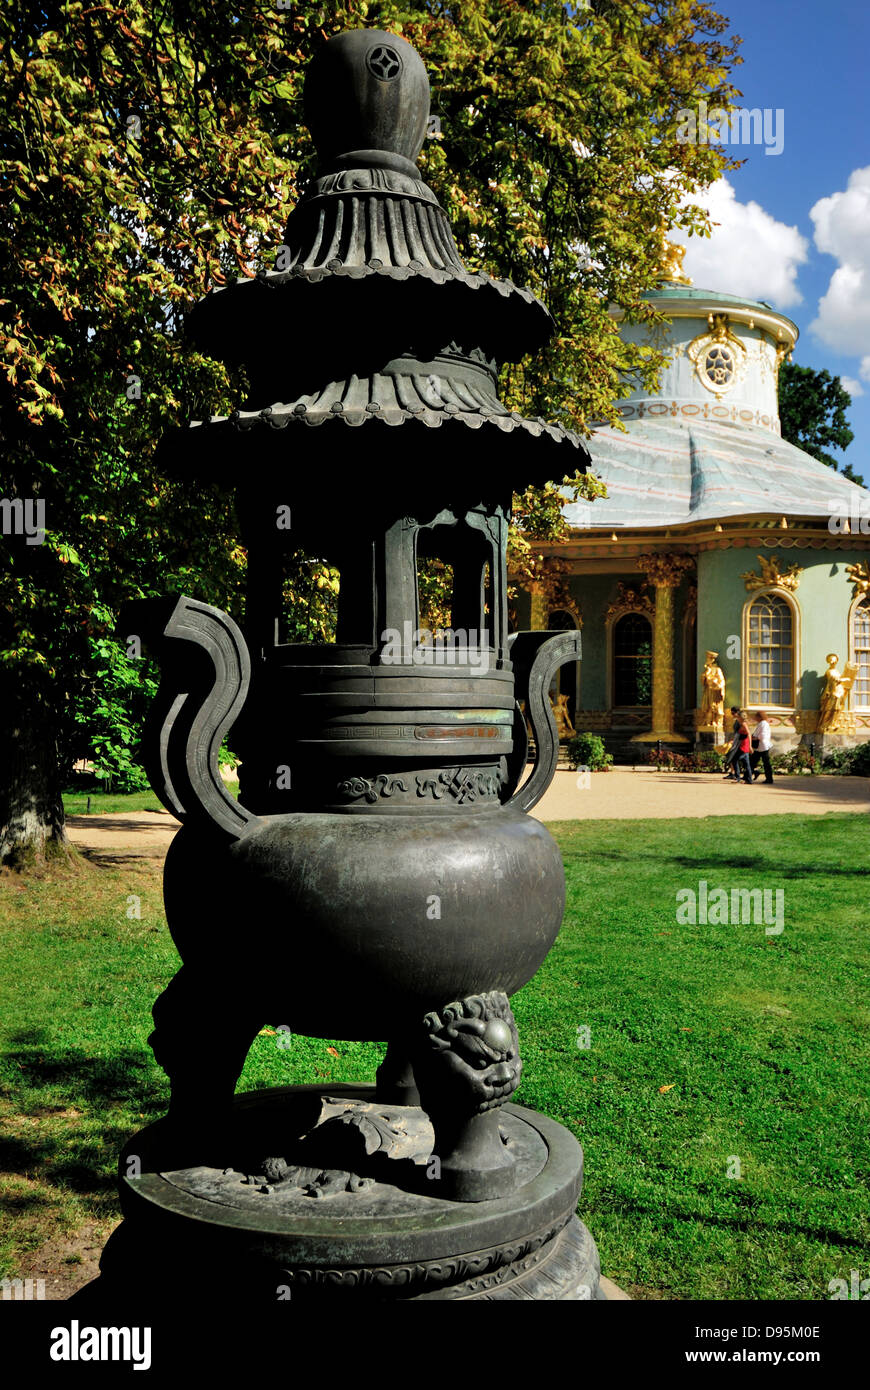 Chinese tea house, potsdam, germany, architecture, baroque, berlin, china, chinese, design, tea, germany - Stock Image